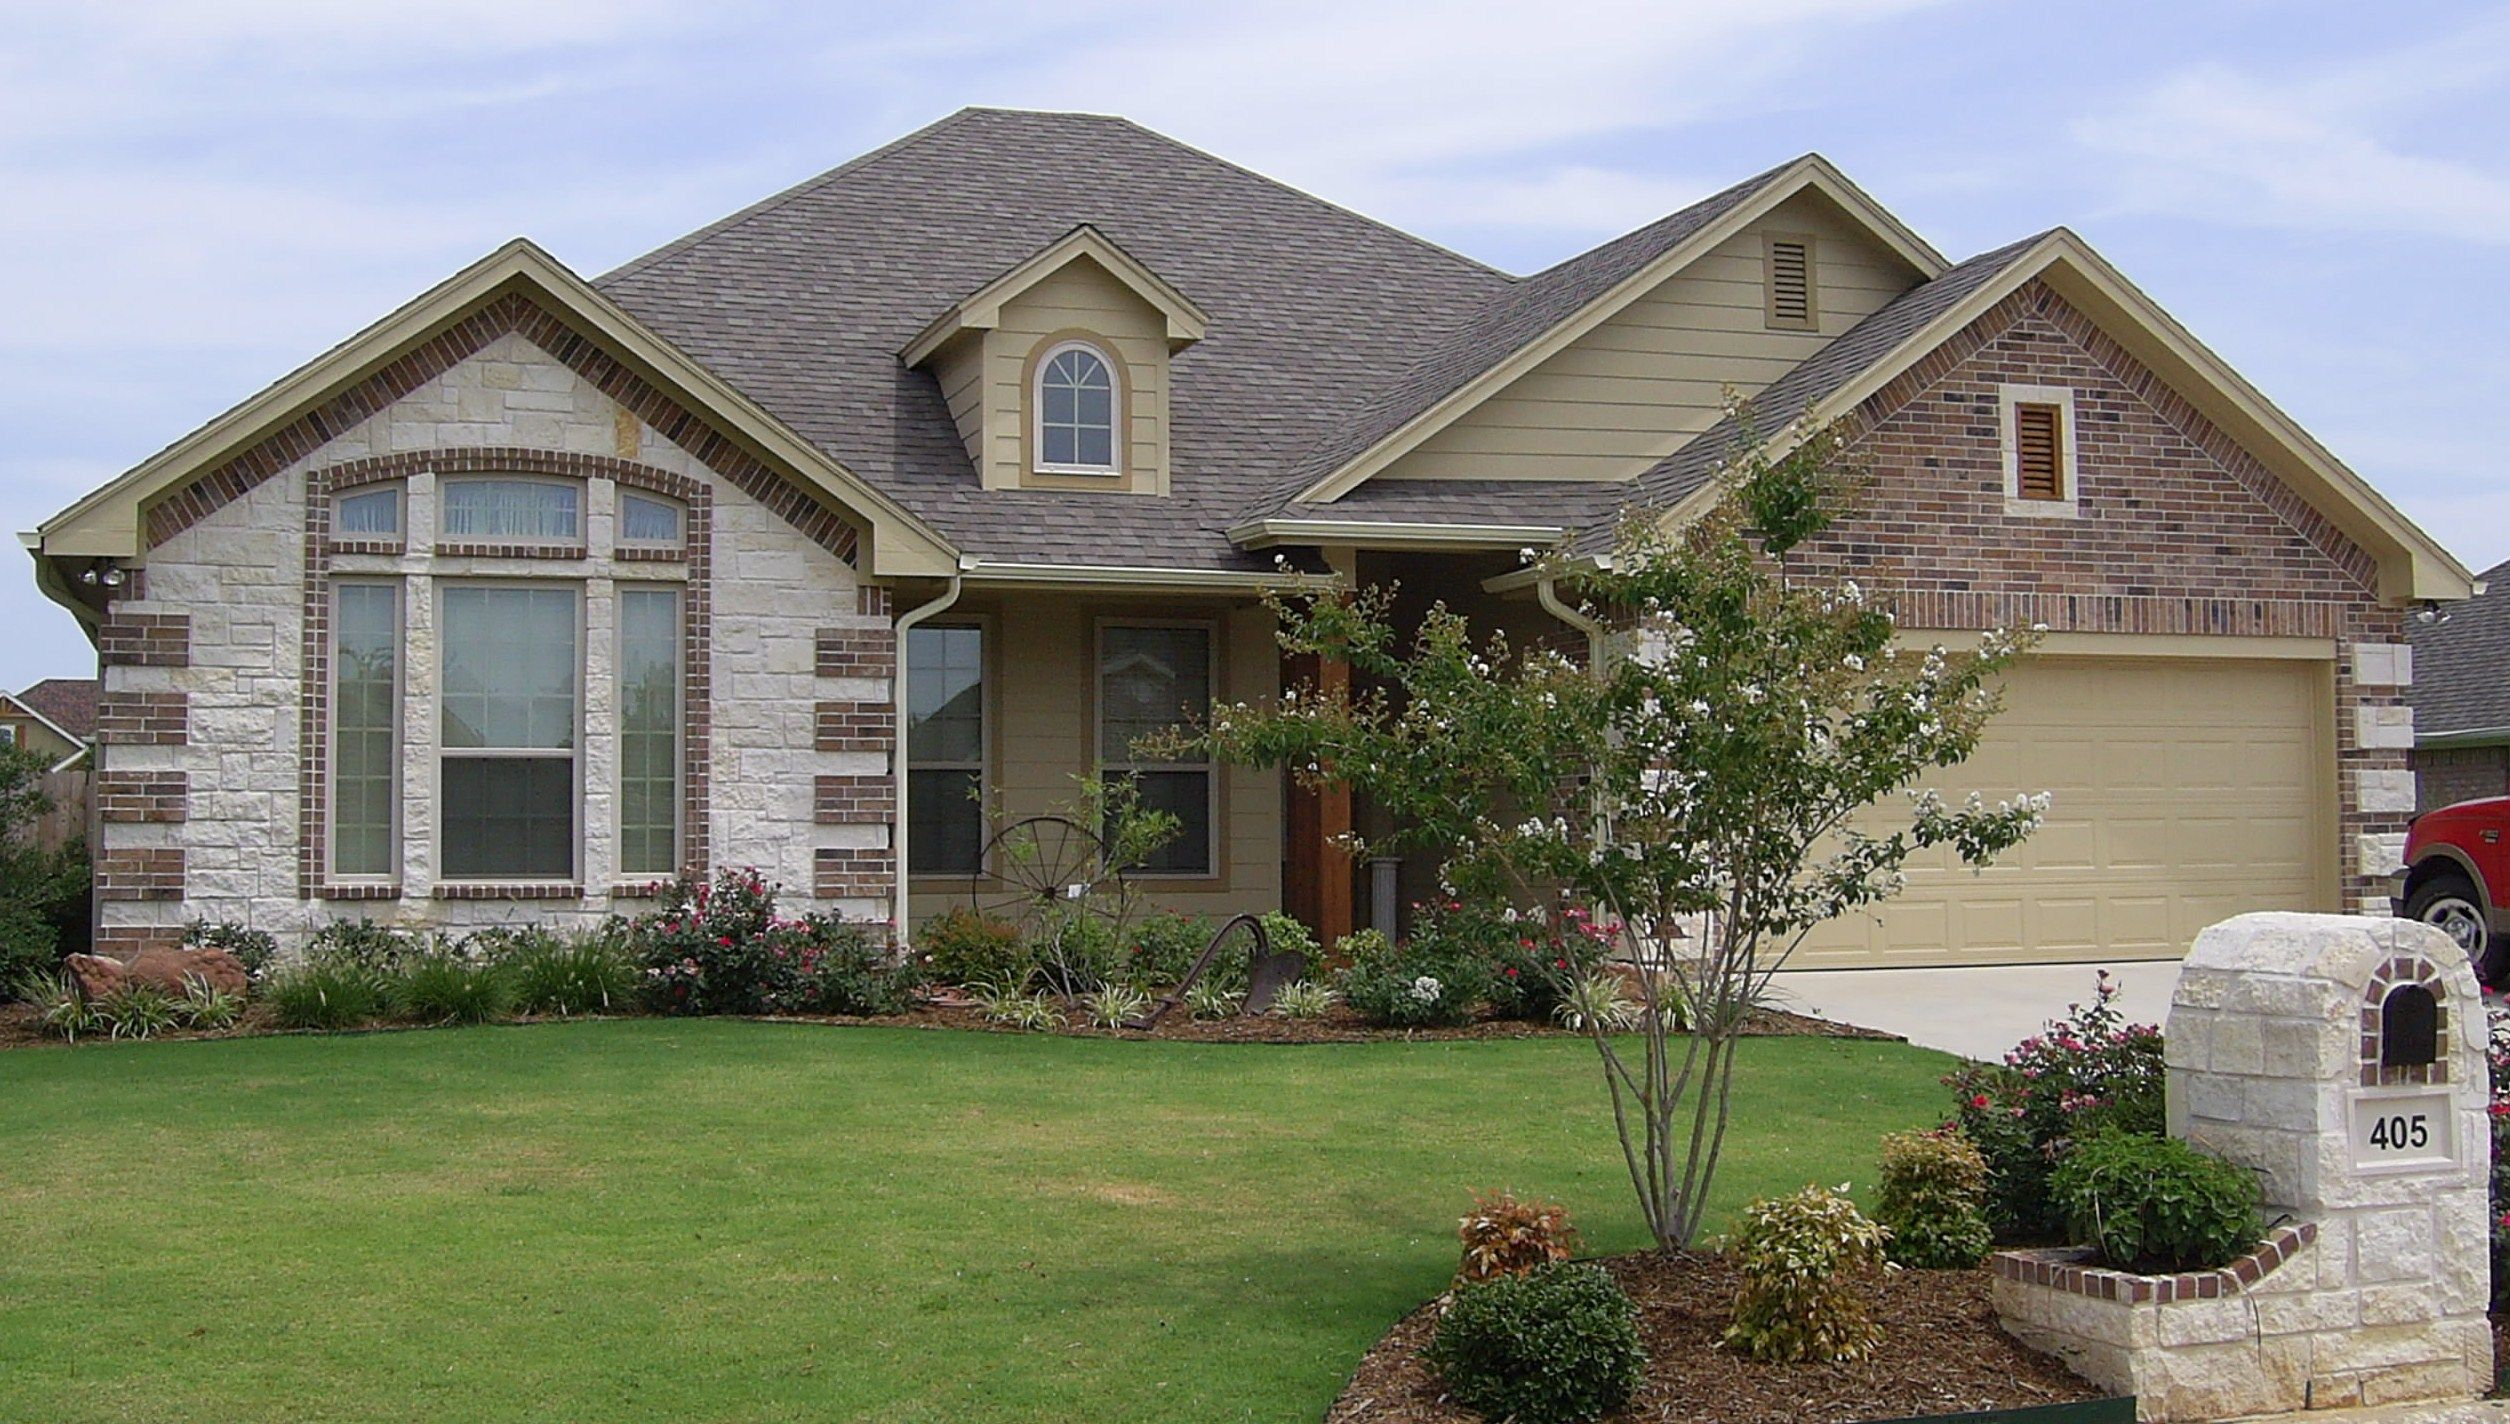 Rock and Brick Combinations | Brick and Stone Exterior Combinations  http://shawncarpenterhomes.